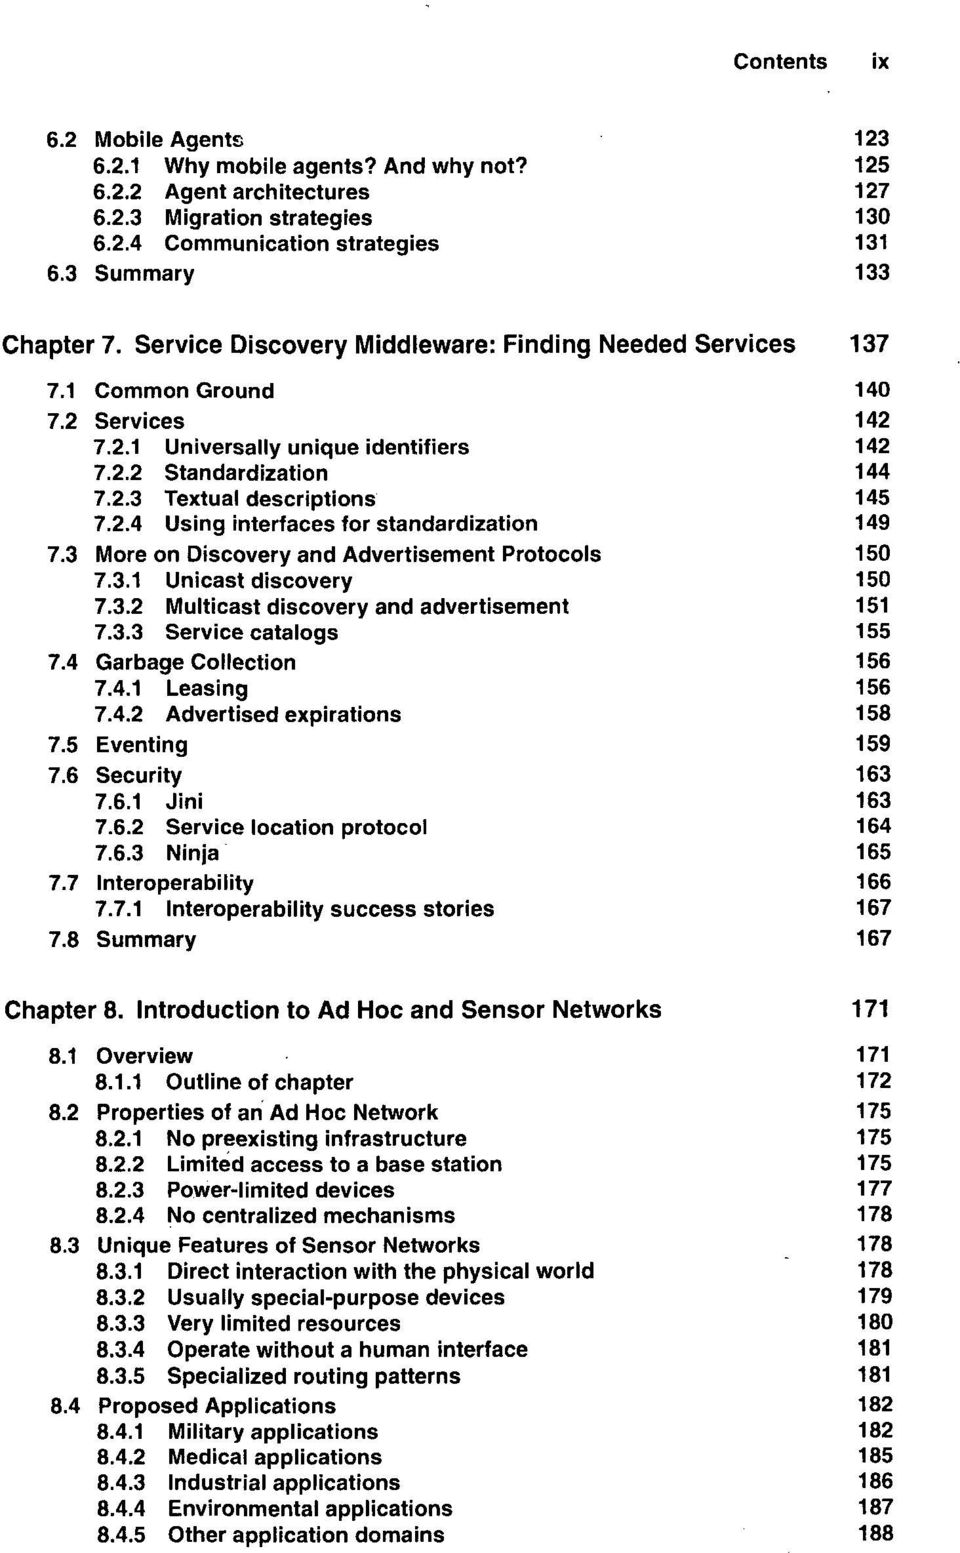 3 More on Discovery and Advertisement Protocols 150 7.3.1 Unicast discovery 150 7.3.2 Multicast discovery and advertisement 151 7.3.3 Service catalogs 155 7.4 Garbage Collection 156 7.4.1 Leasing 156 7.